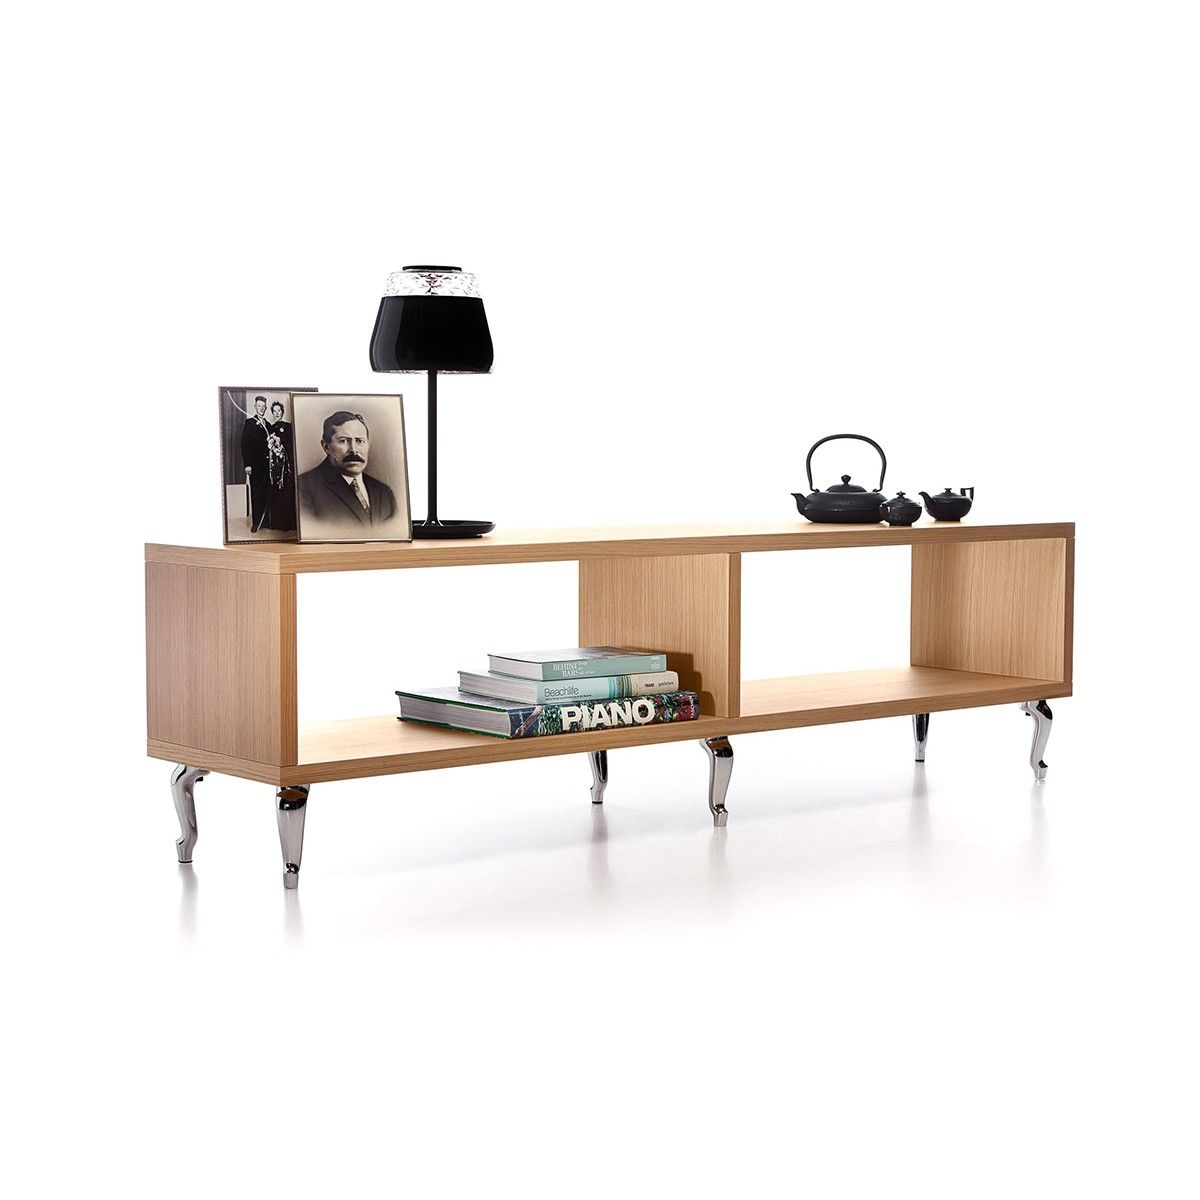 Cheap Sectional Sofas Bassotti sideboard Moooi